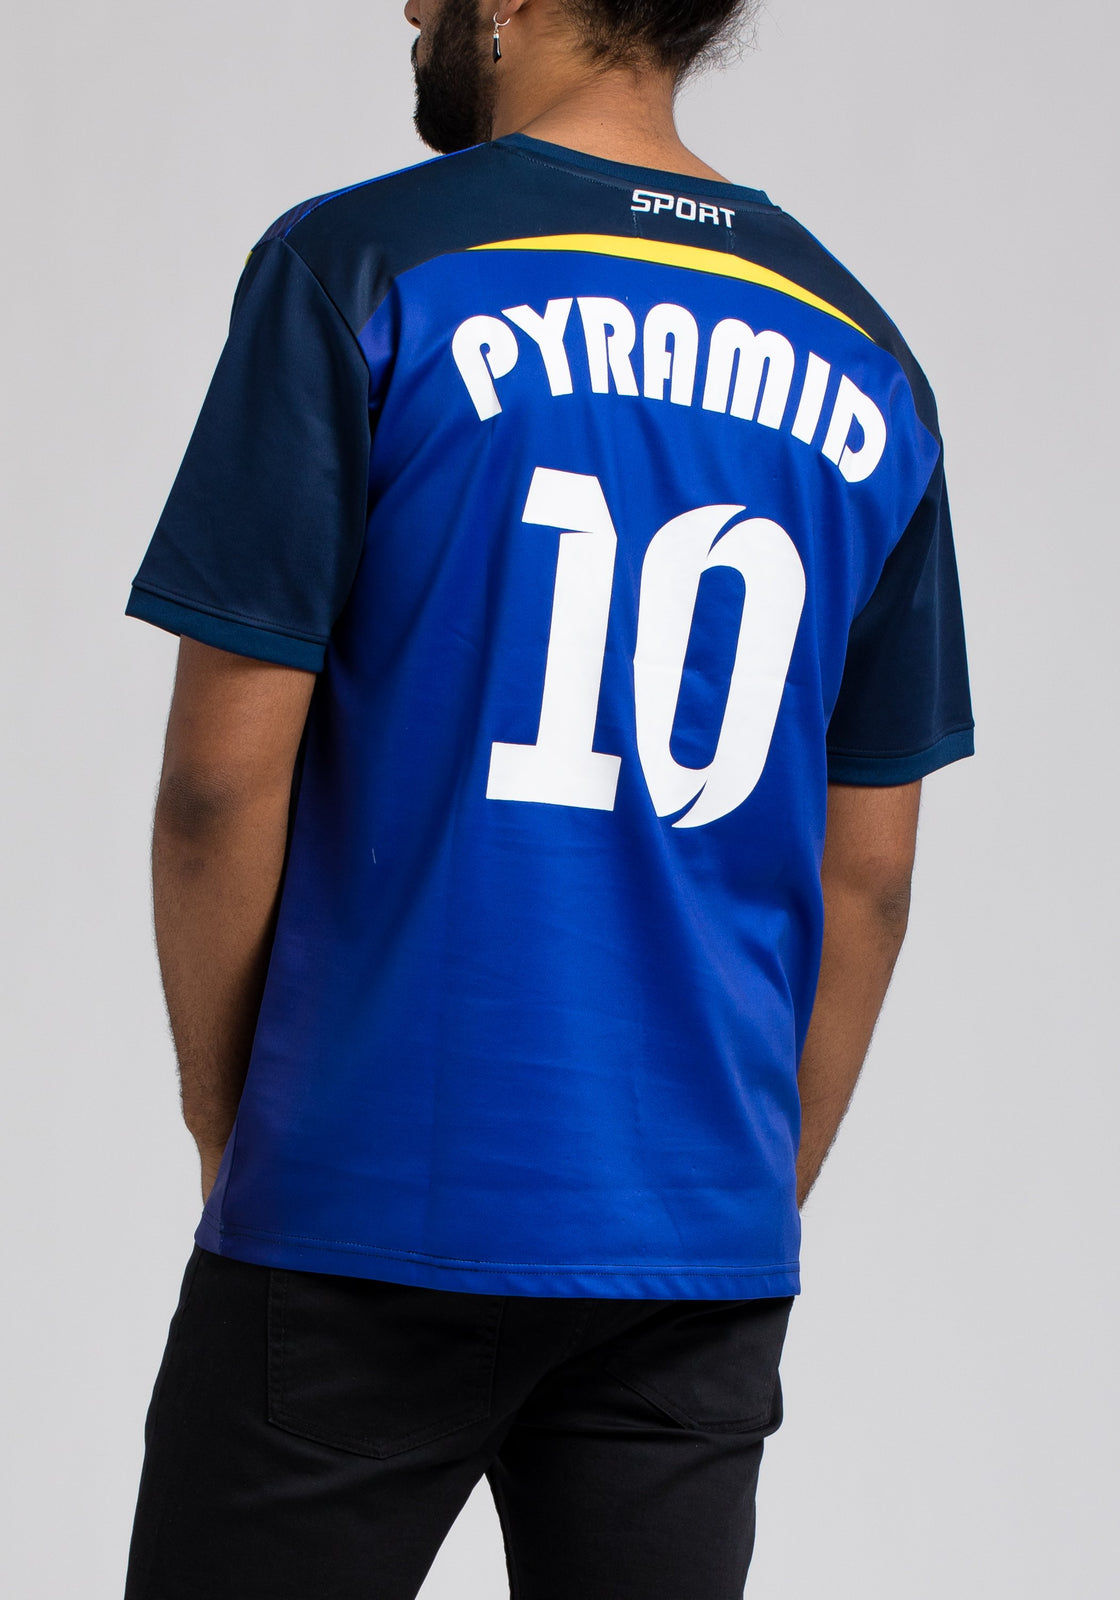 BP 10 SS Shirt - Color: Blue